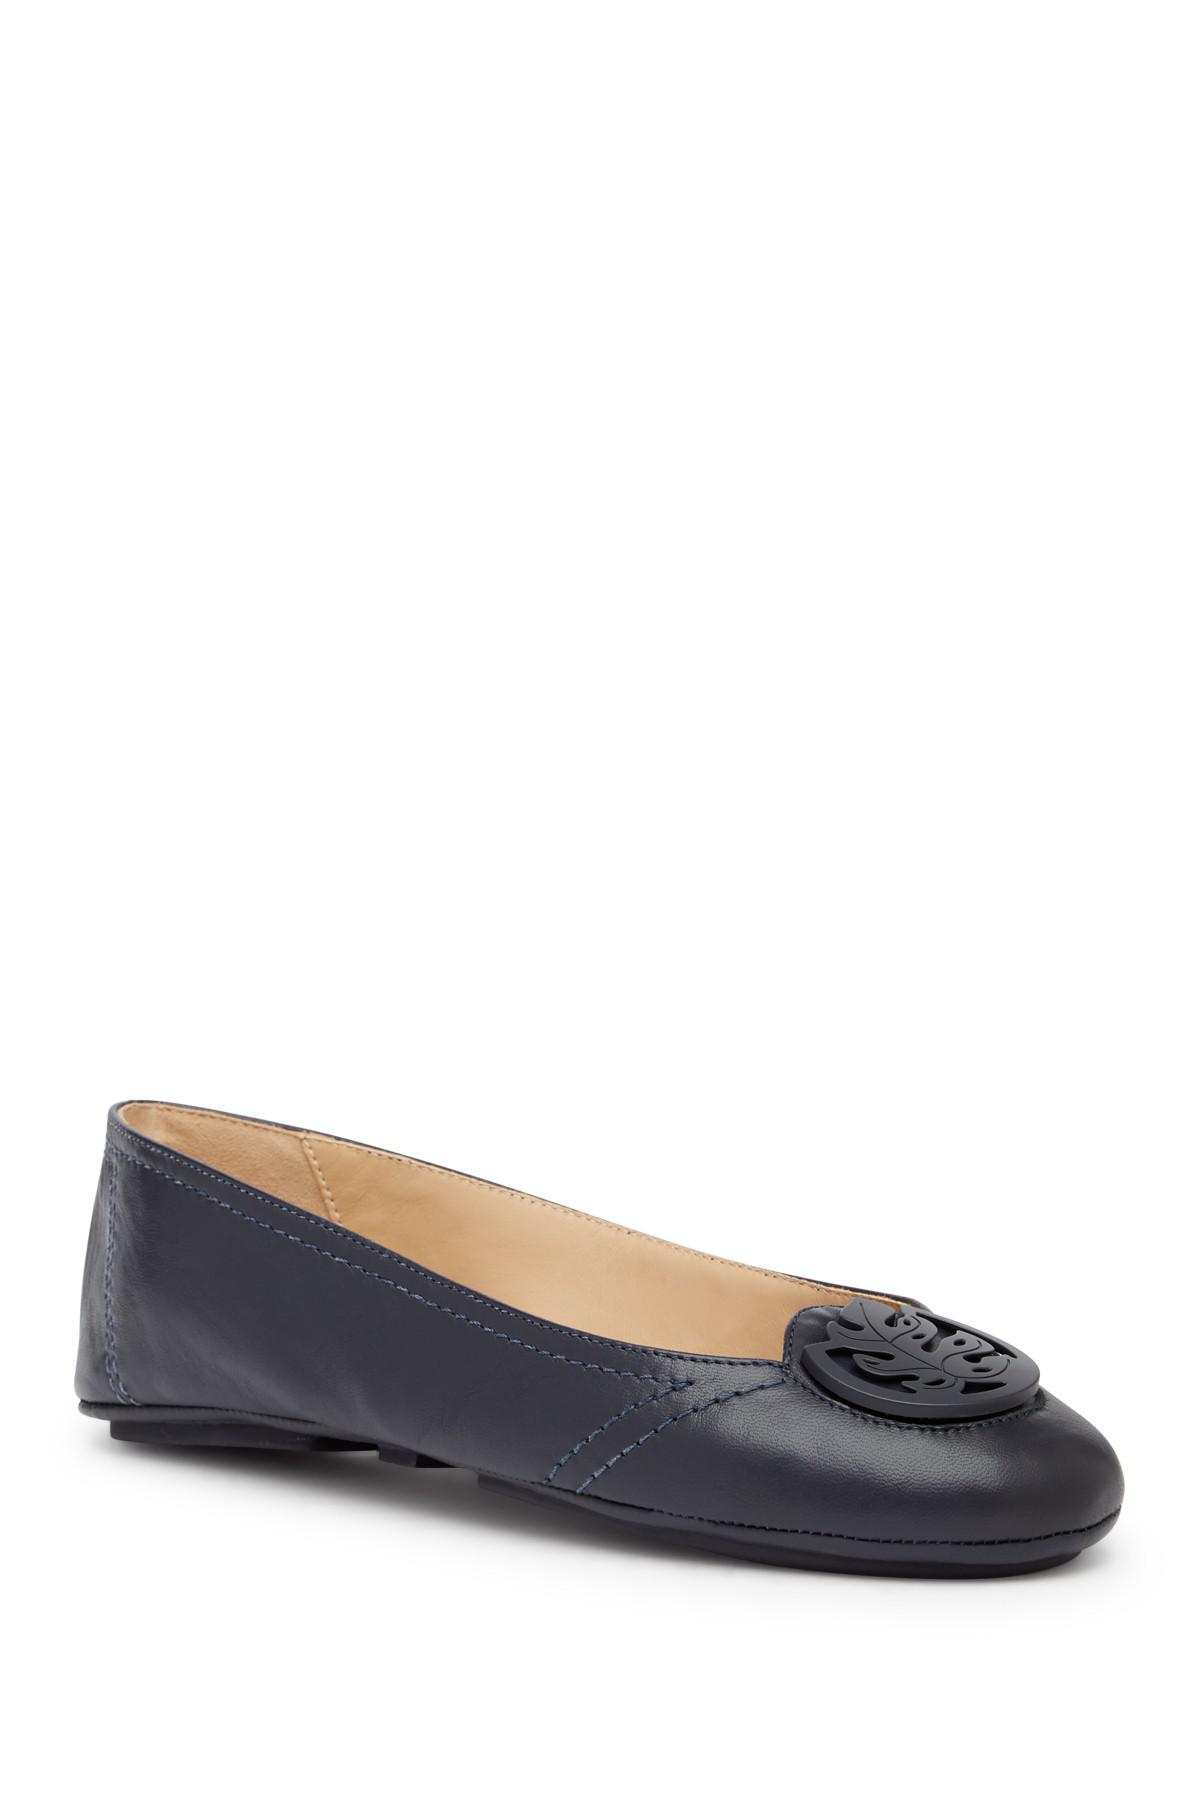 top quality deals for sale Tommy Bahama Leather Ballet Flats outlet wide range of geniue stockist online outlet classic SCi55jS0Uo